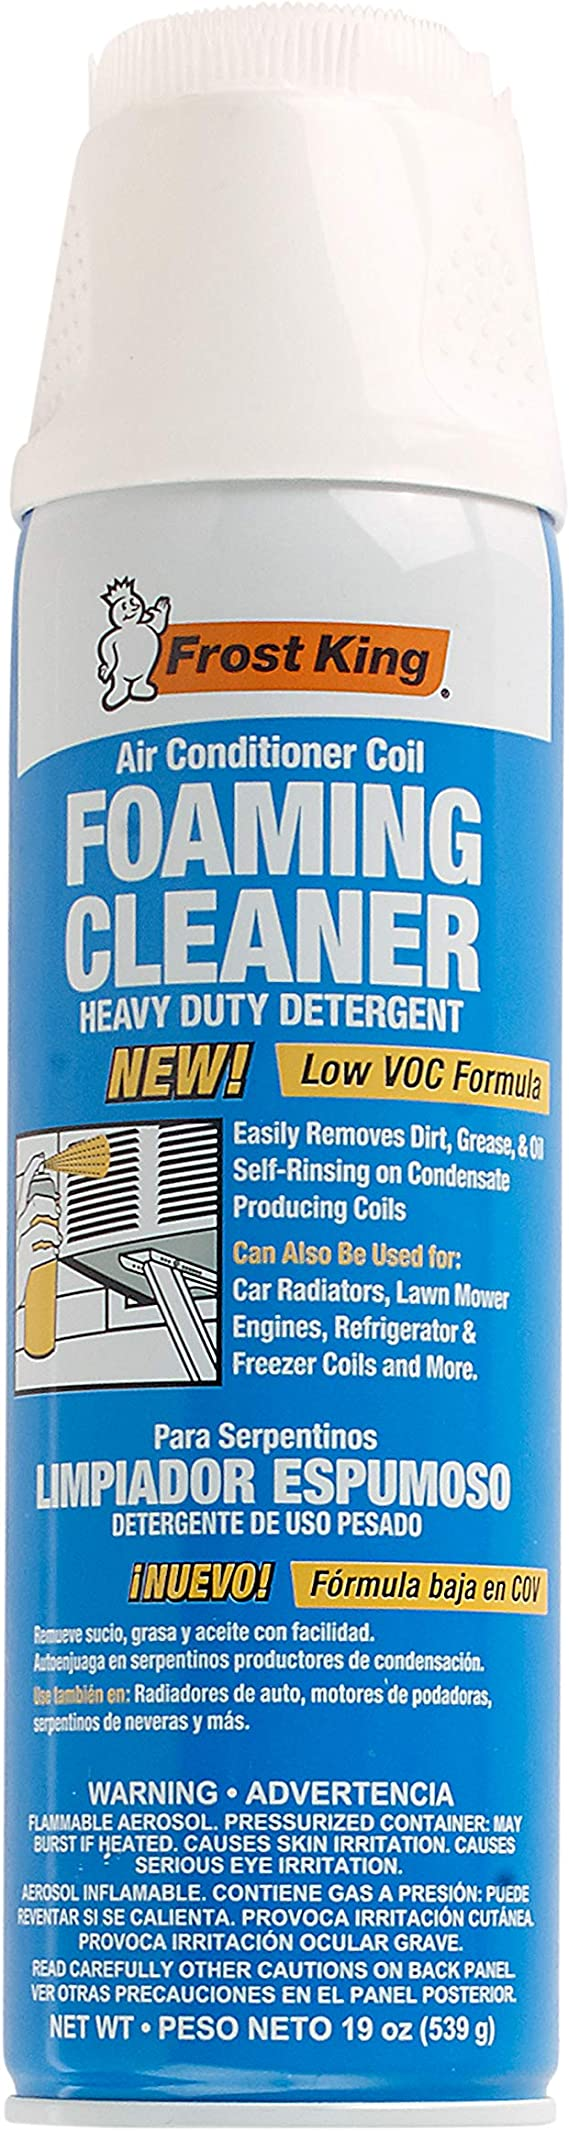 Frost King Air Conditioner Coil Foam Cleaner